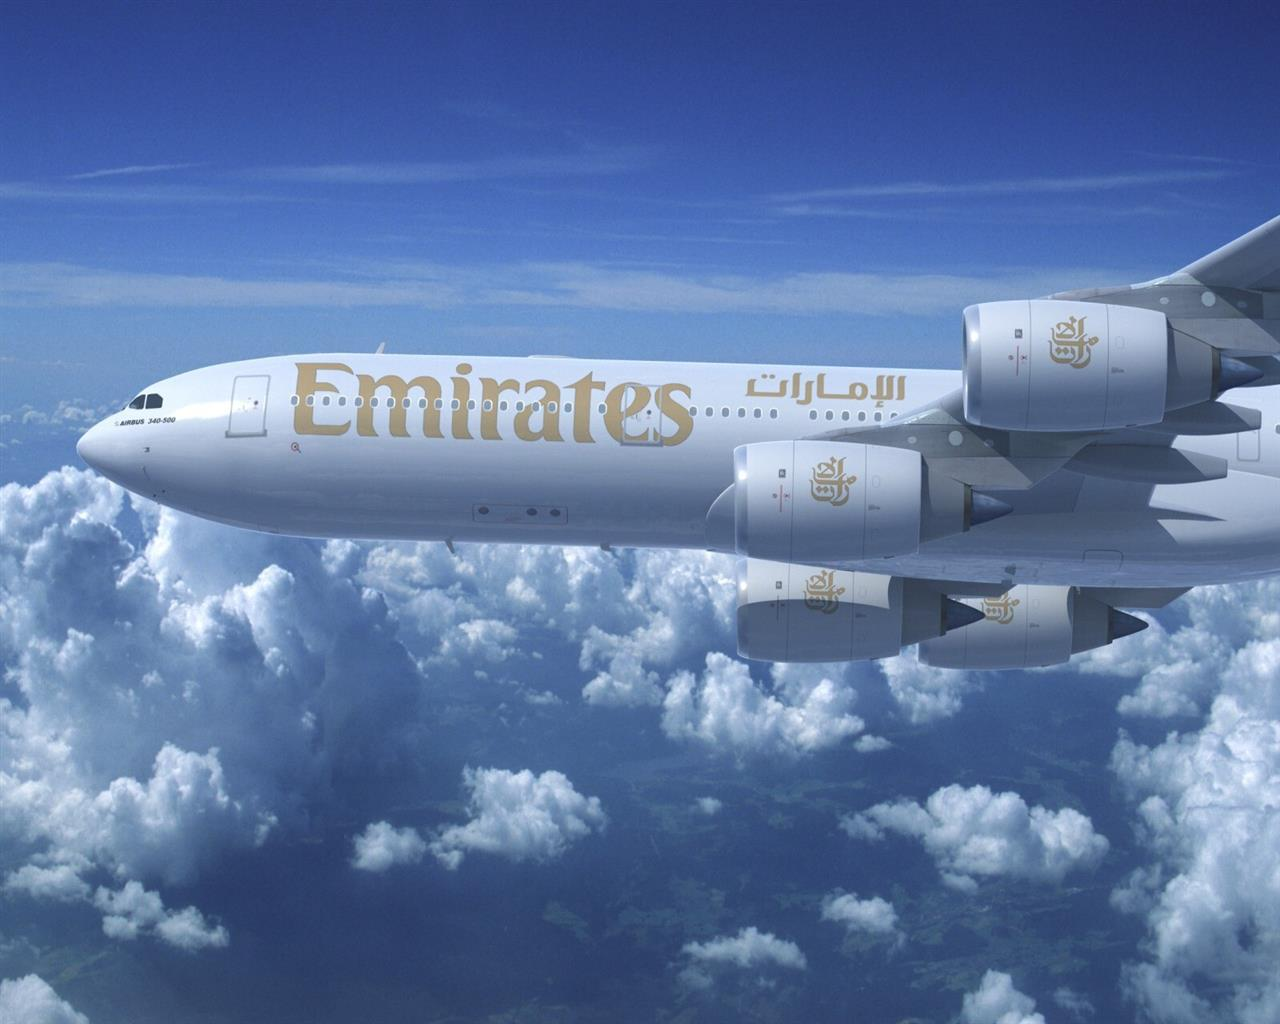 1280x1024 Emirates Airplane